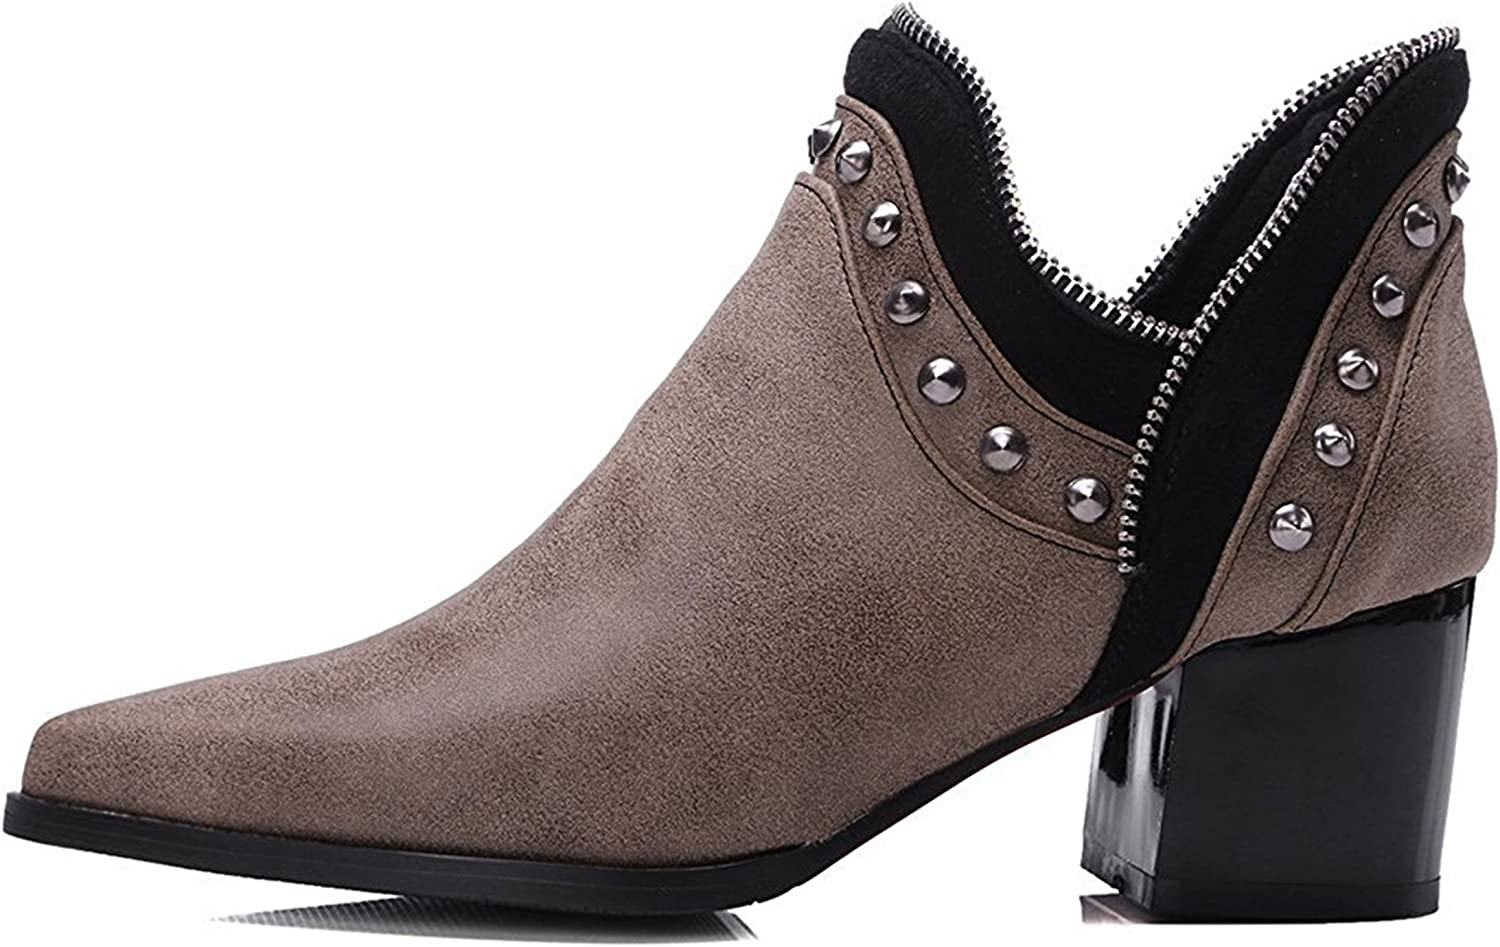 Robert Reyna Fashion Women's Dressy Studded Mid Heels Chunky Pointed Toe Short Boots Motor Booties